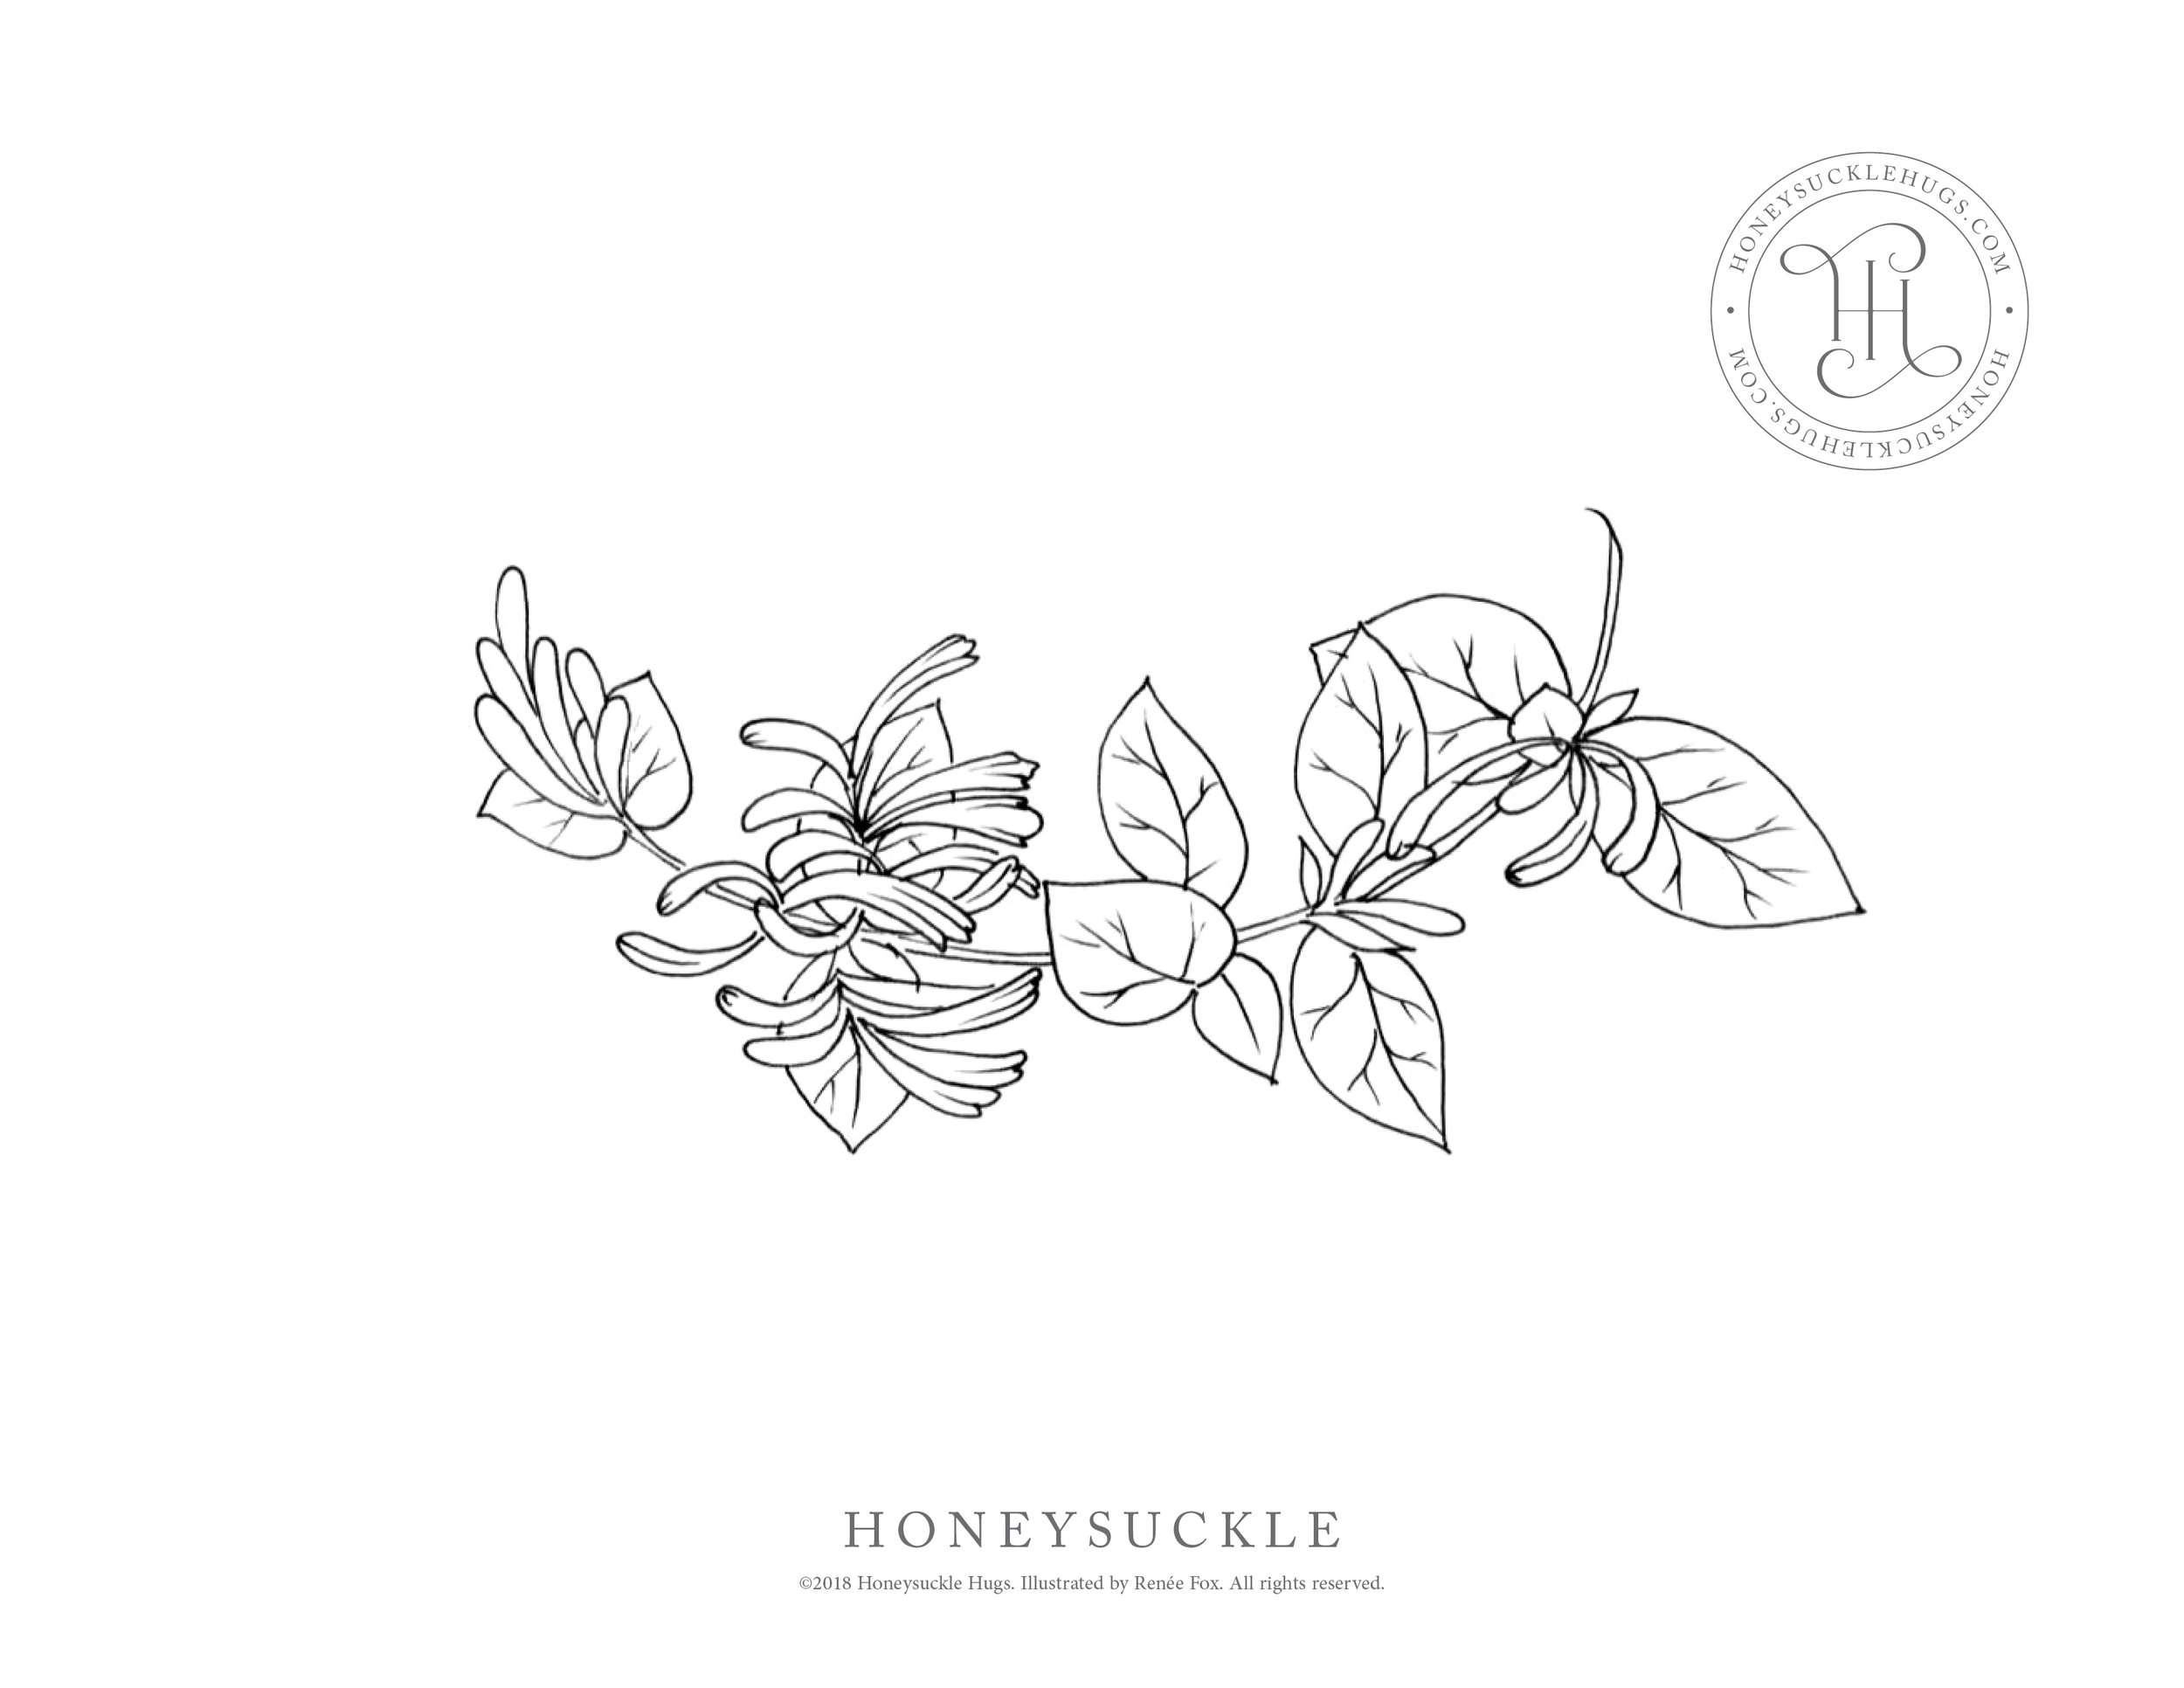 honeysuckle-coloring-page.jpg